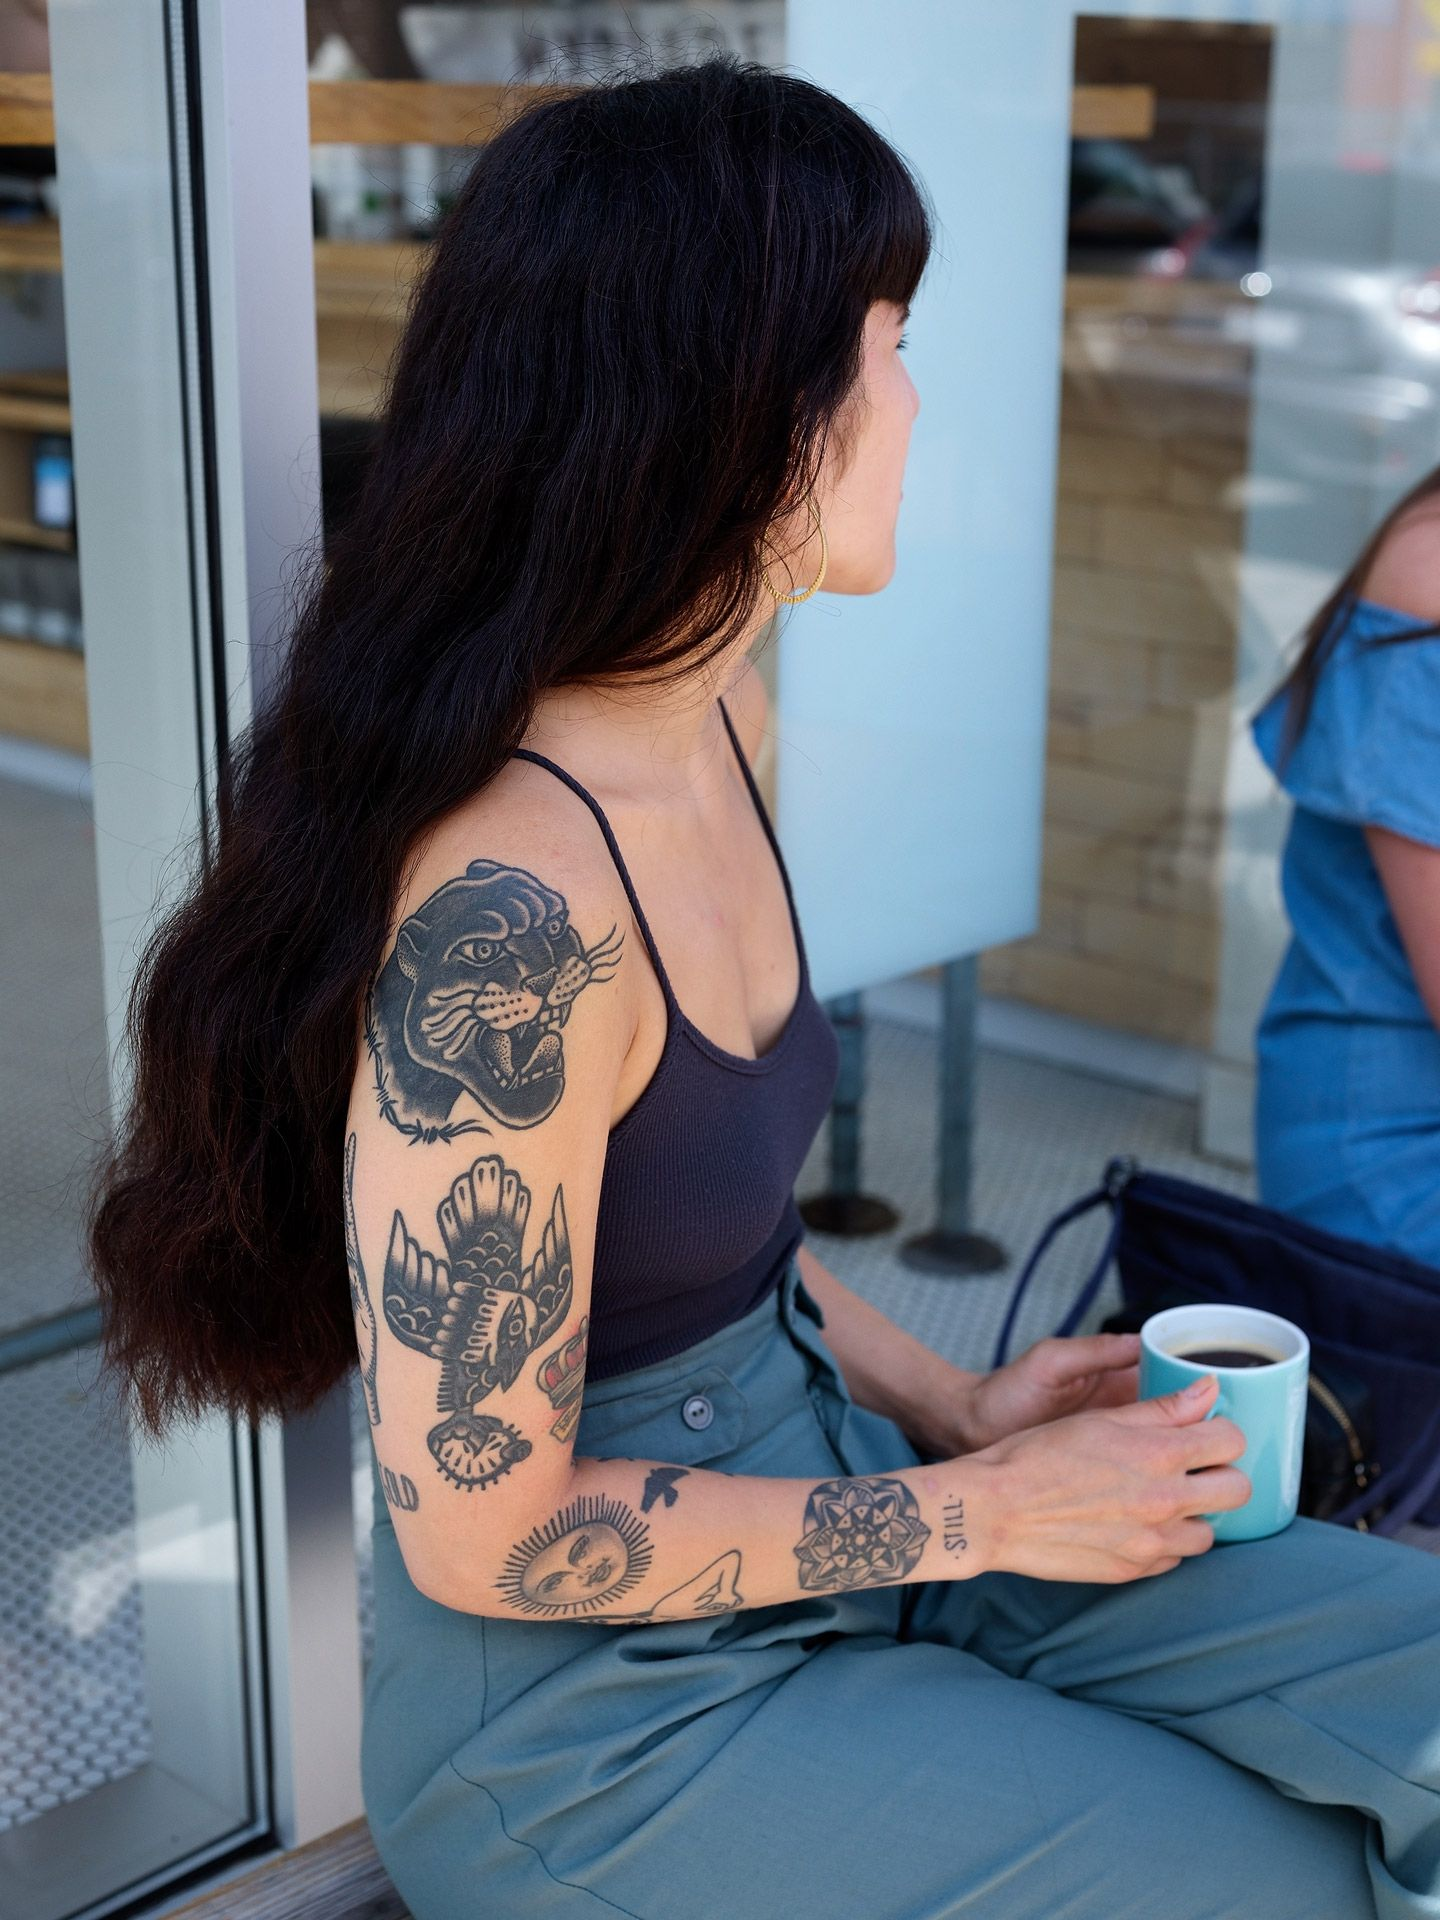 long black haired woman sitting on a bench knees crossed holding light blue cup of coffee wearing black spaghetti strap top and blue pants sporting a full sleeve of tattoos photographed by Guillaume Simoneau as part of Off Duty Montreal series for The Wall Street Journal magazine